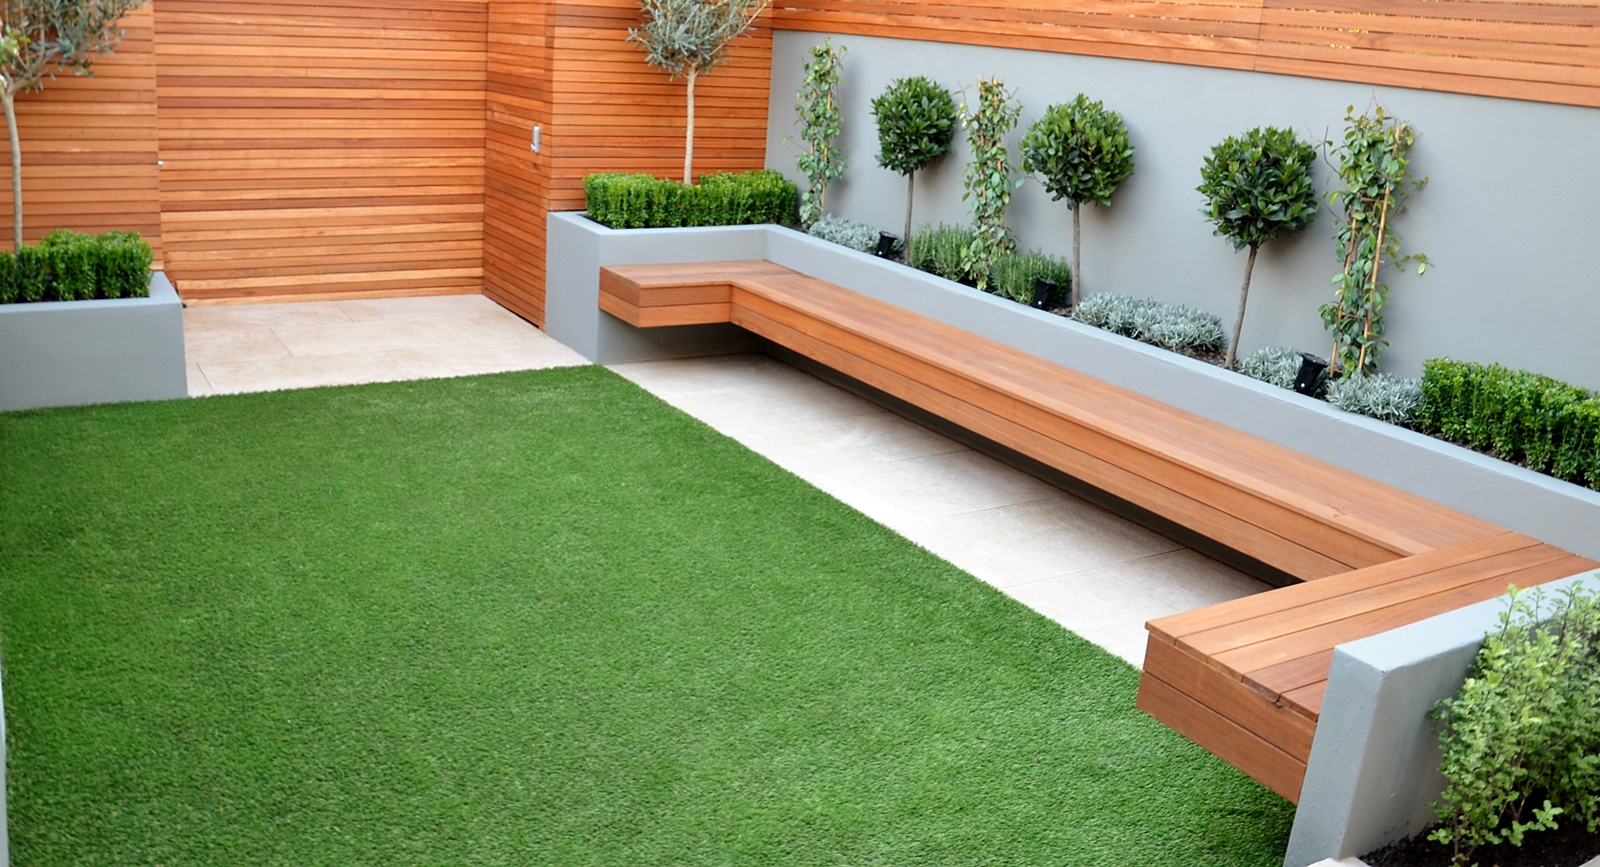 Urban garden design modern urban garden design ideas for Modern garden ideas